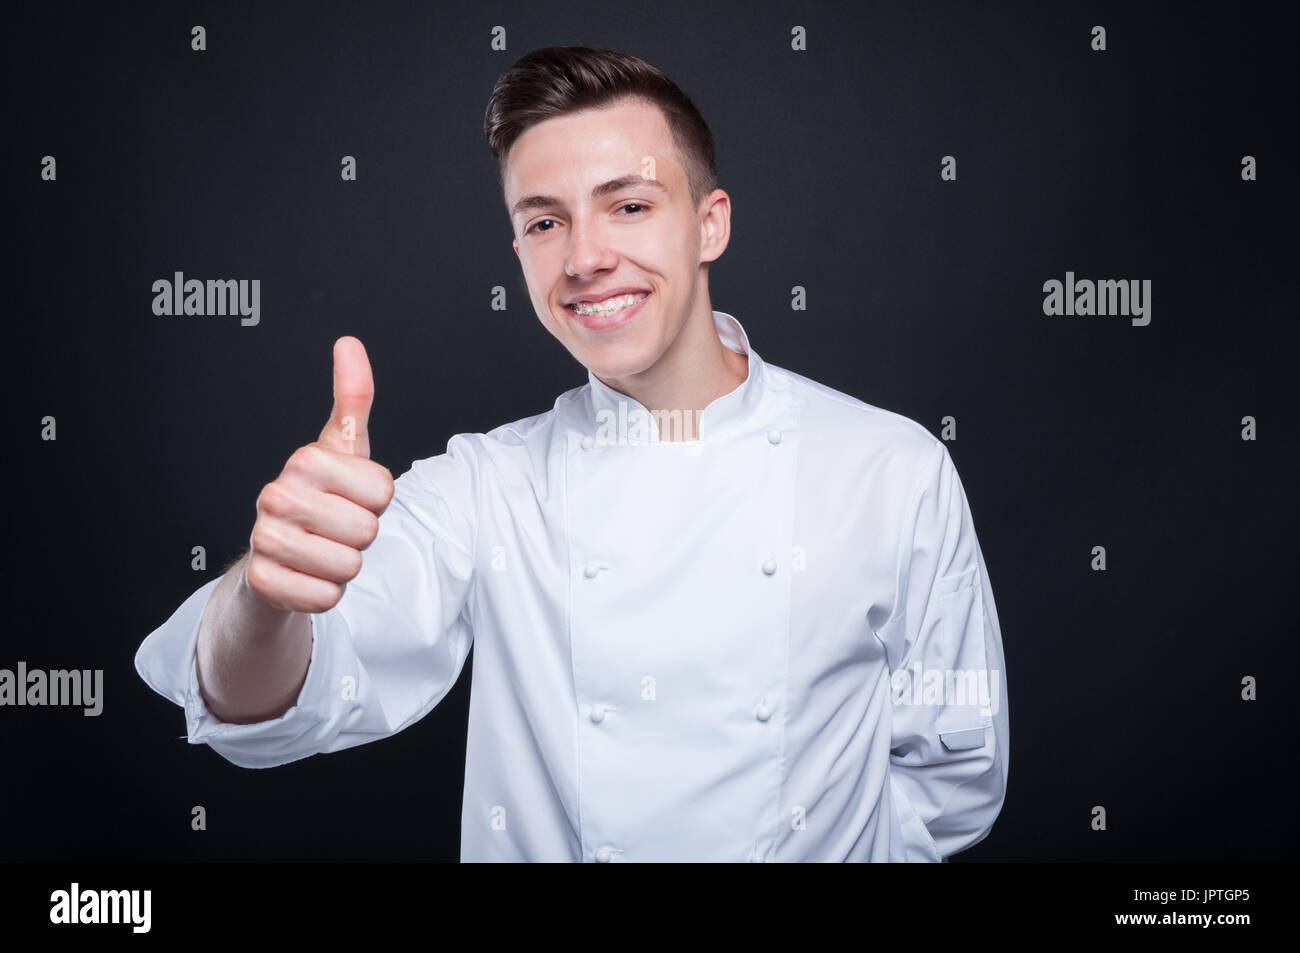 Handsome smiling chef giving thumb up for his restaurant isolated on dark background - Stock Image